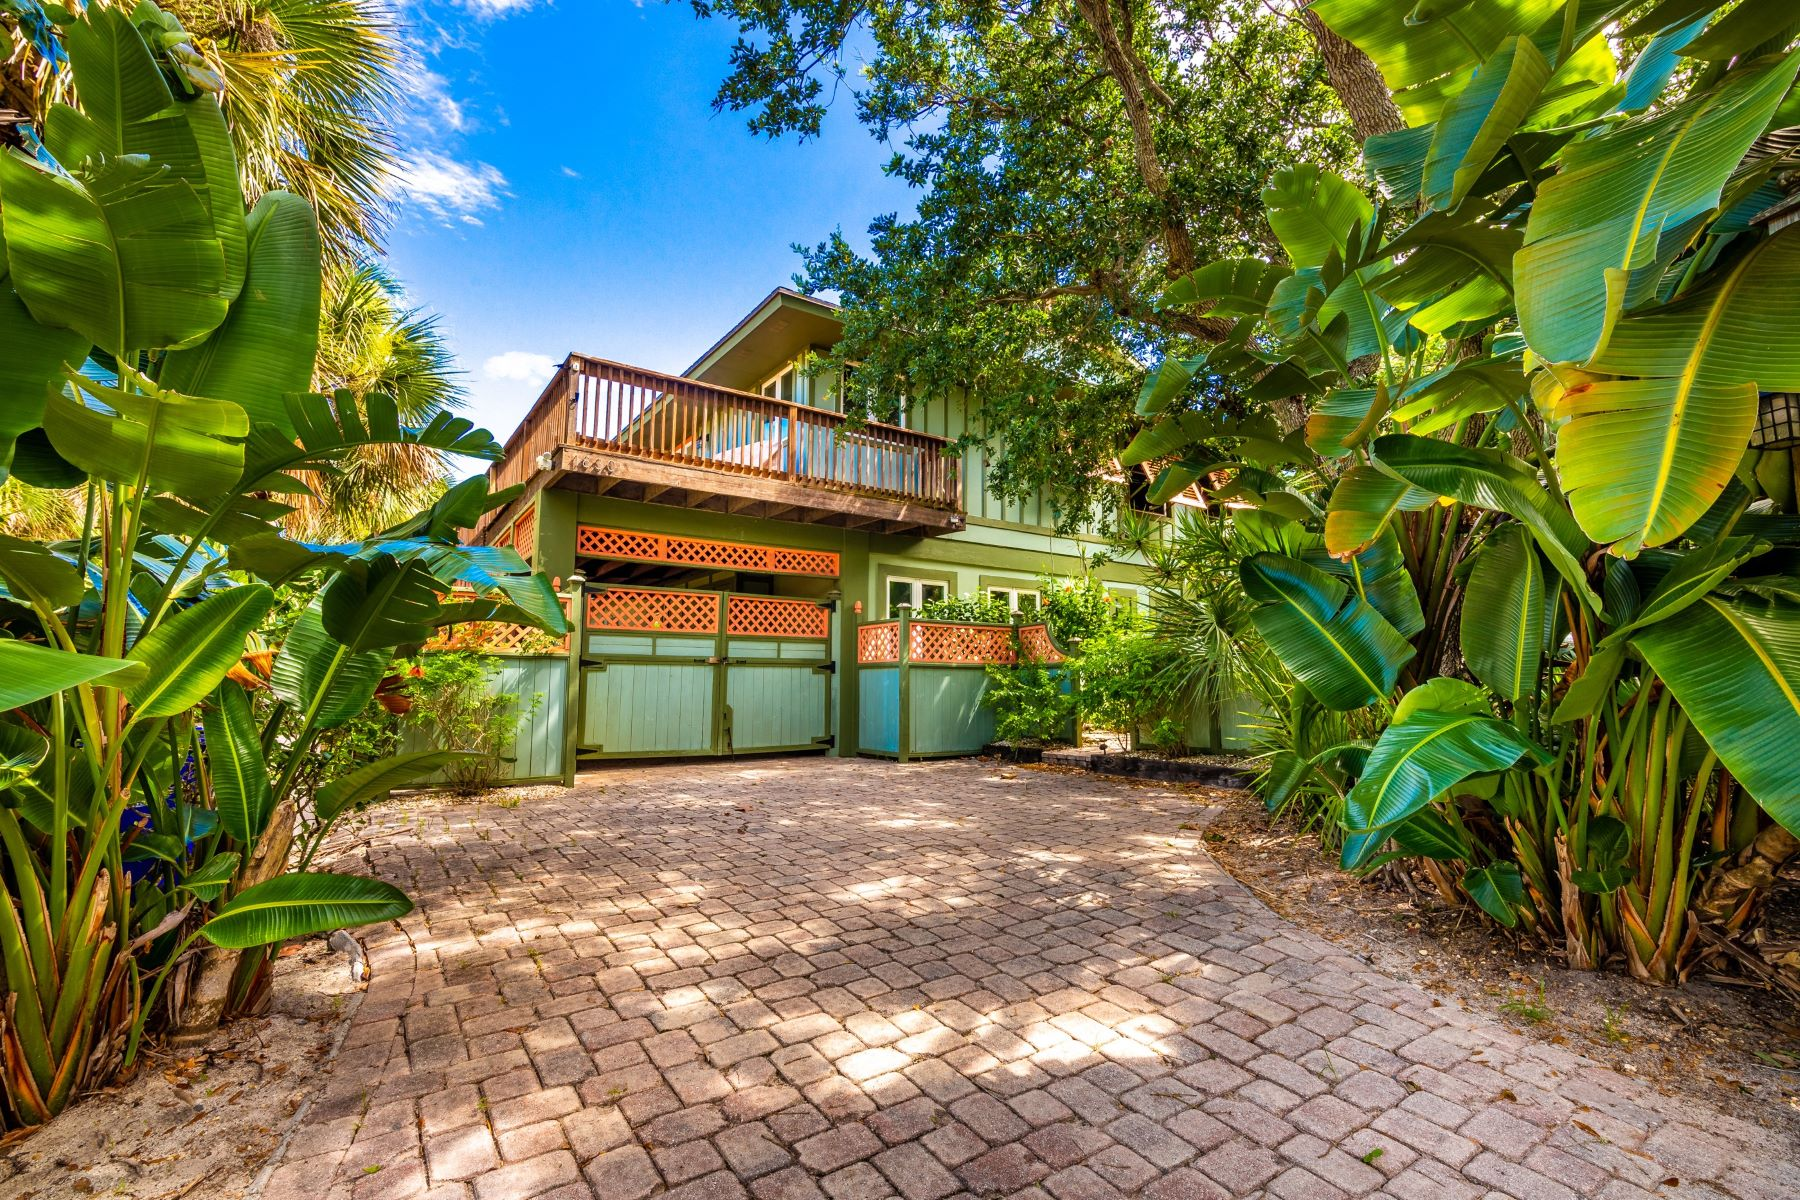 Single Family Homes for Sale at Tropical Home in Tranquil & Quiet Setting 1830 E Cayman Road Vero Beach, Florida 32963 United States